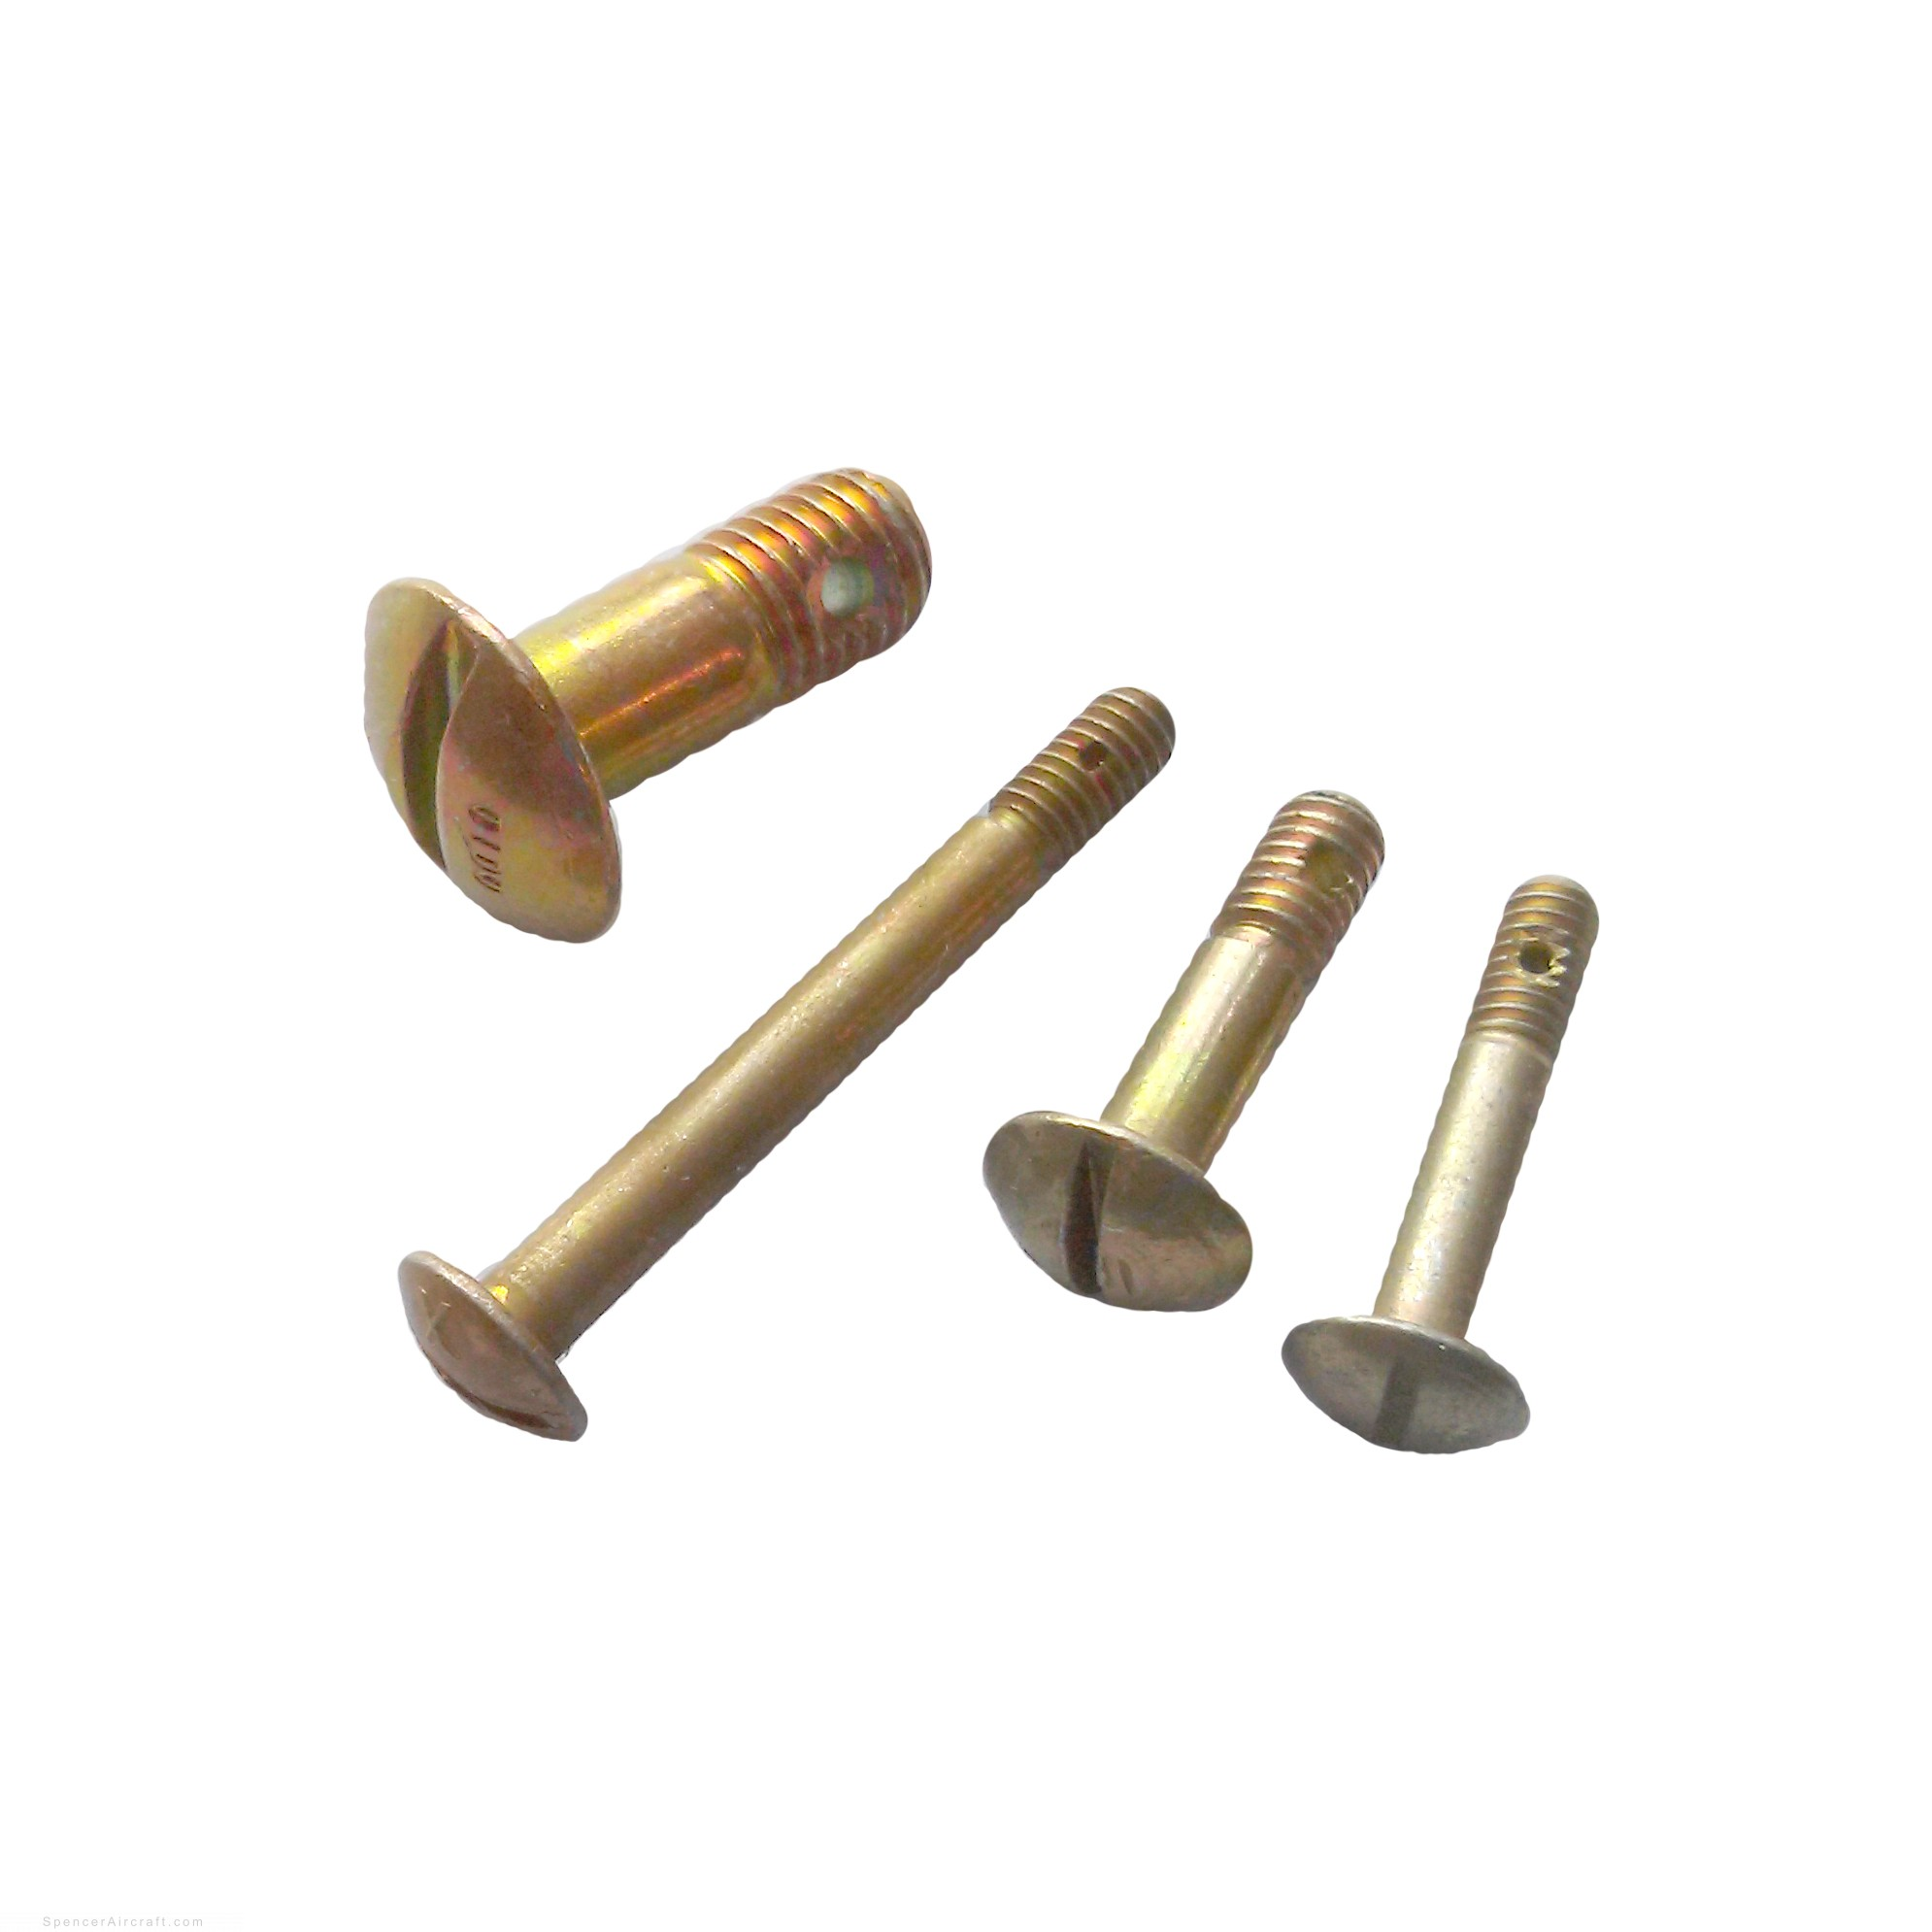 An23 25 Clevis Bolt Drilled 10 32 X 1 19 Oal Grip 4 Cessna Parts Aircraft Accessories Cadmium Plated